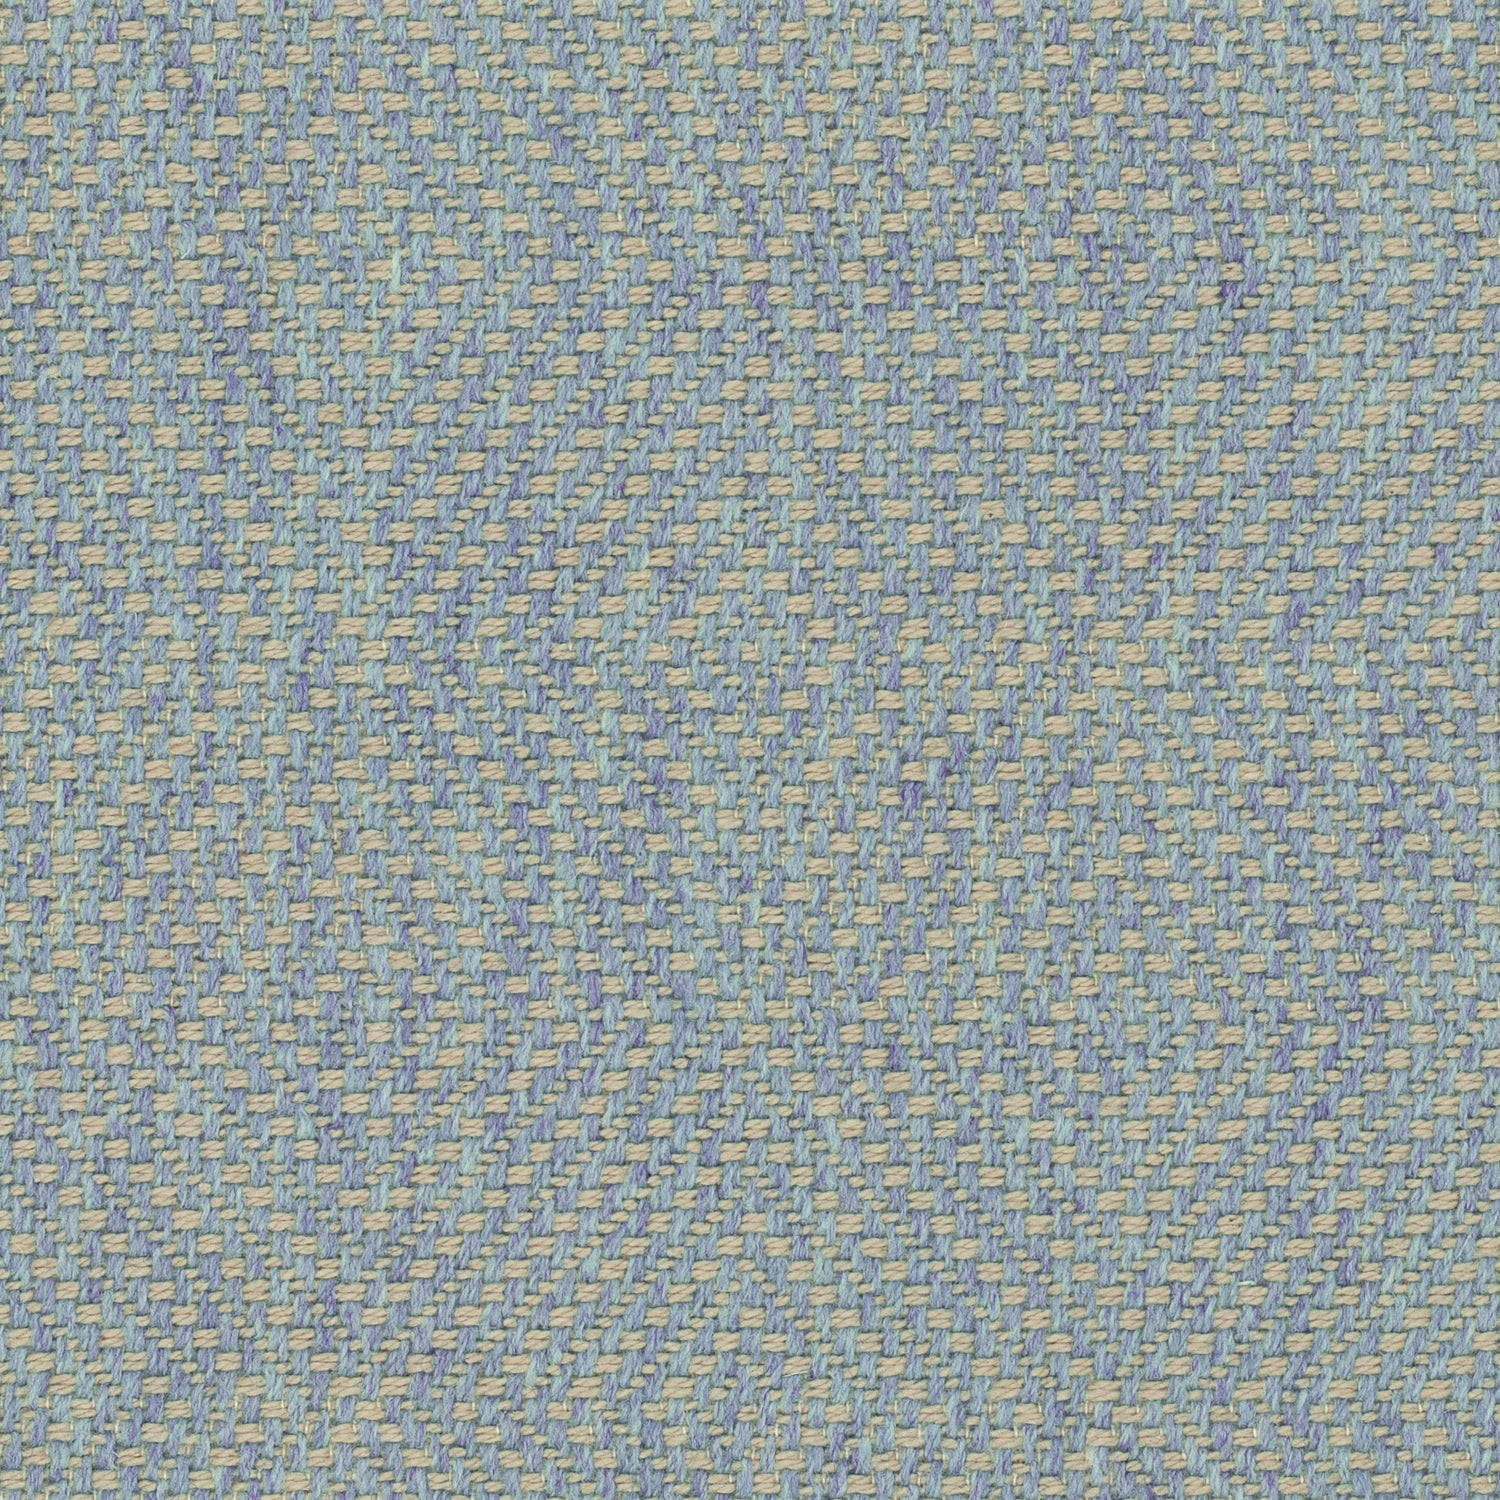 Light blue fabric for curtains and upholstery with a neutral woven geometric design